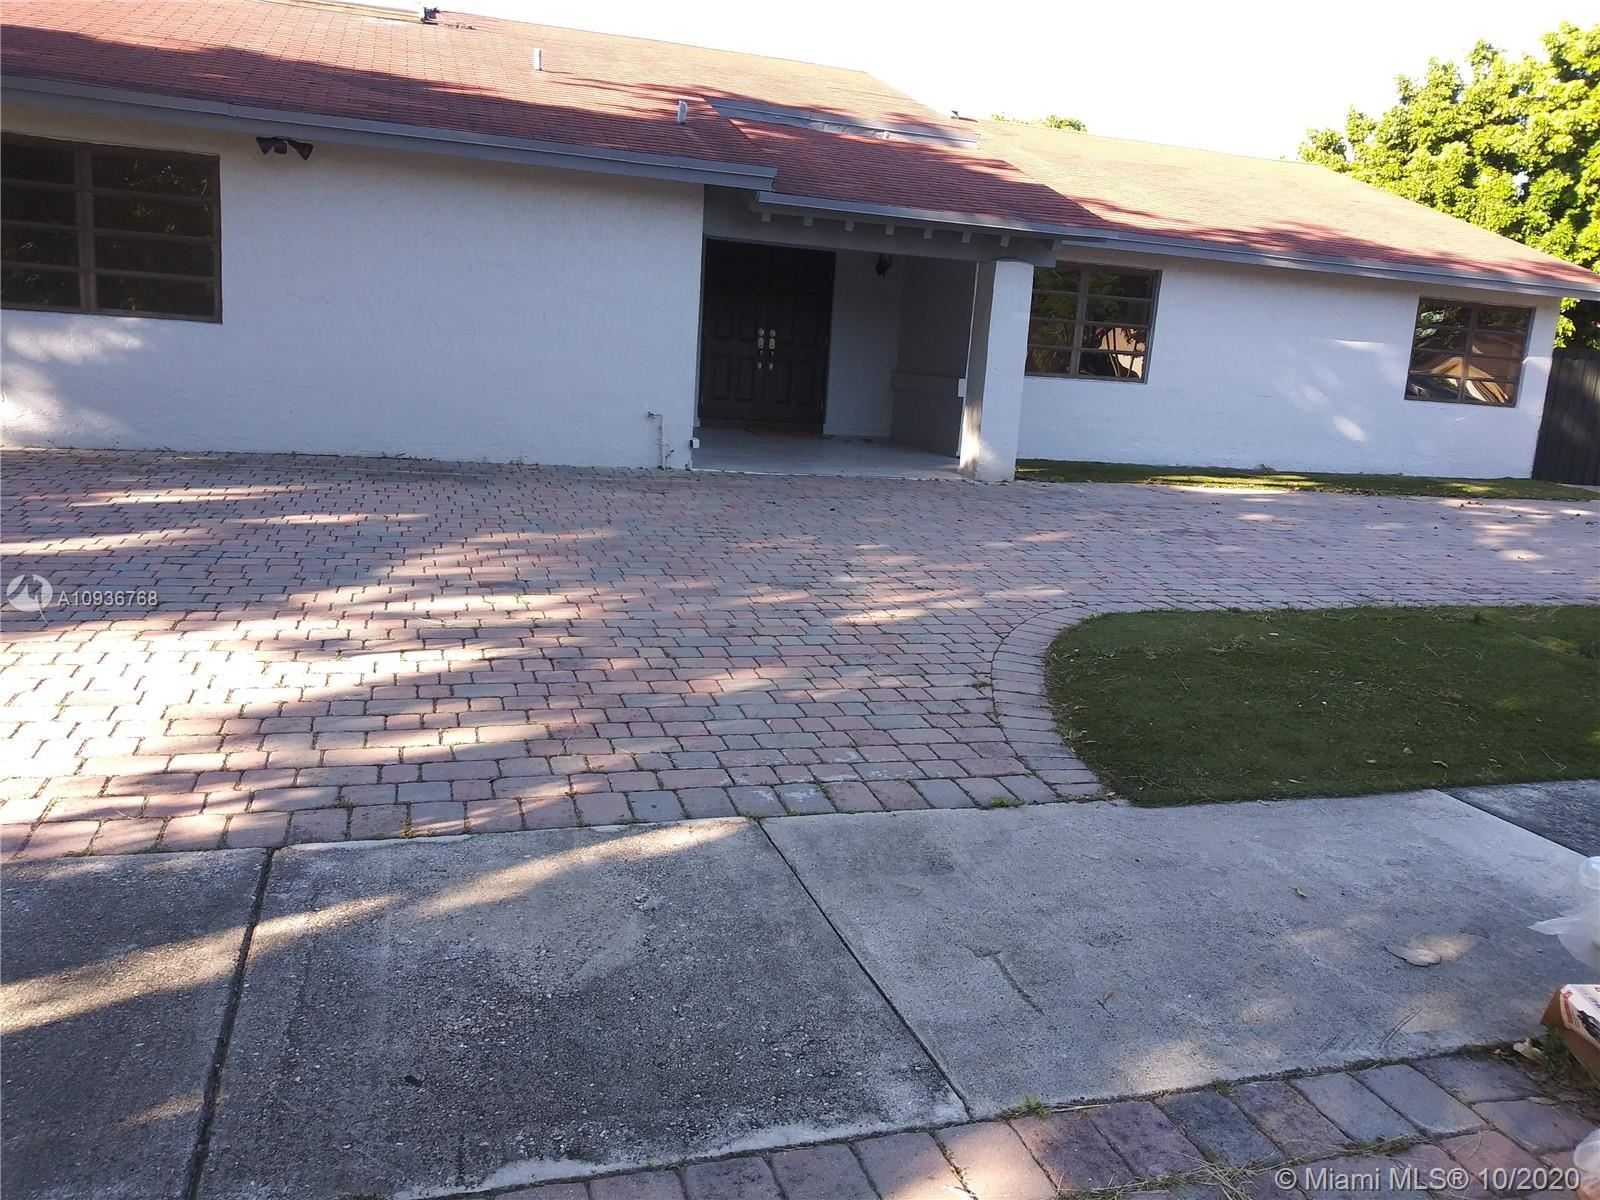 13425 SW 88th Ter, Miami, FL 33186 - #: A10936768